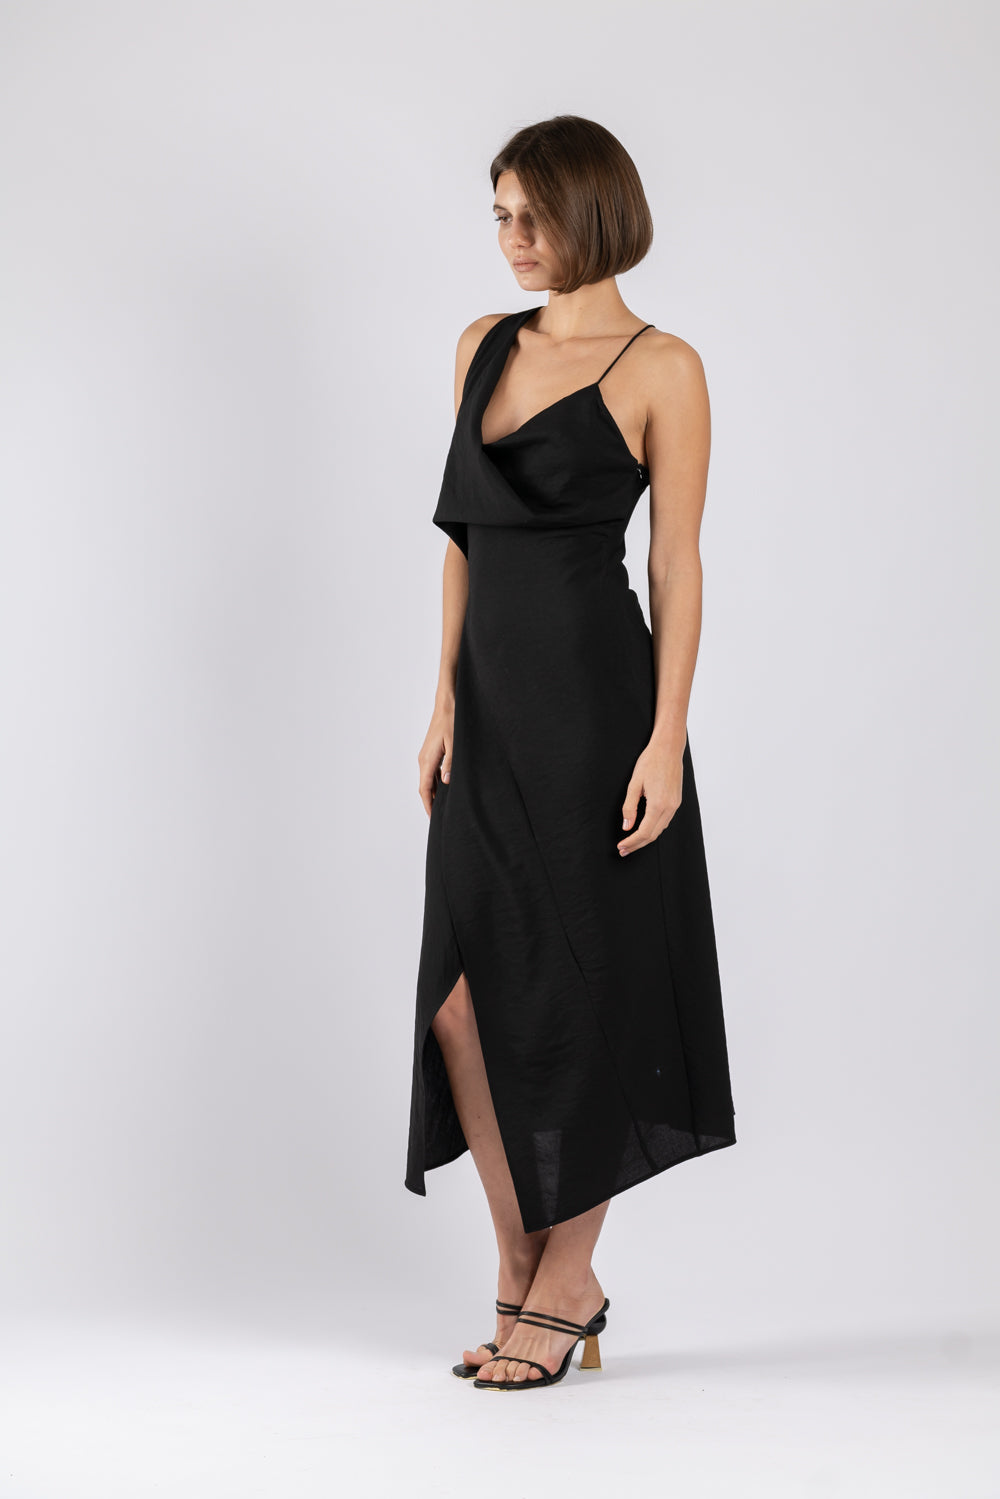 MUSE DRESS IN BLACK TEXTURE